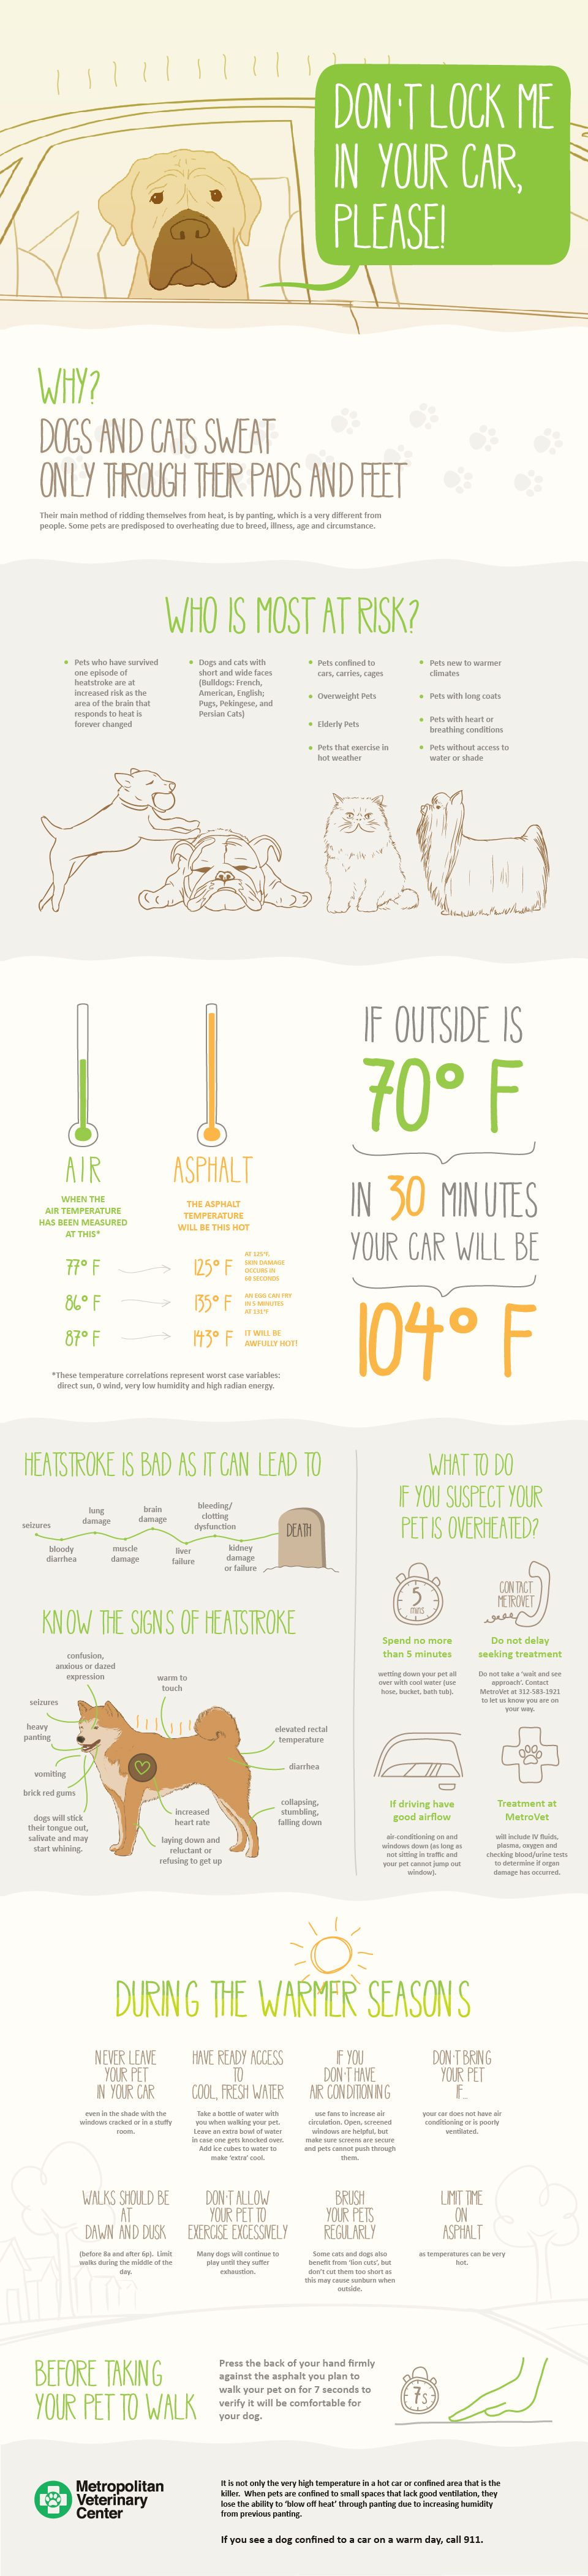 Caring For Pets In Warm Weather Visual Ly Pets Dog Infographic Pet Health